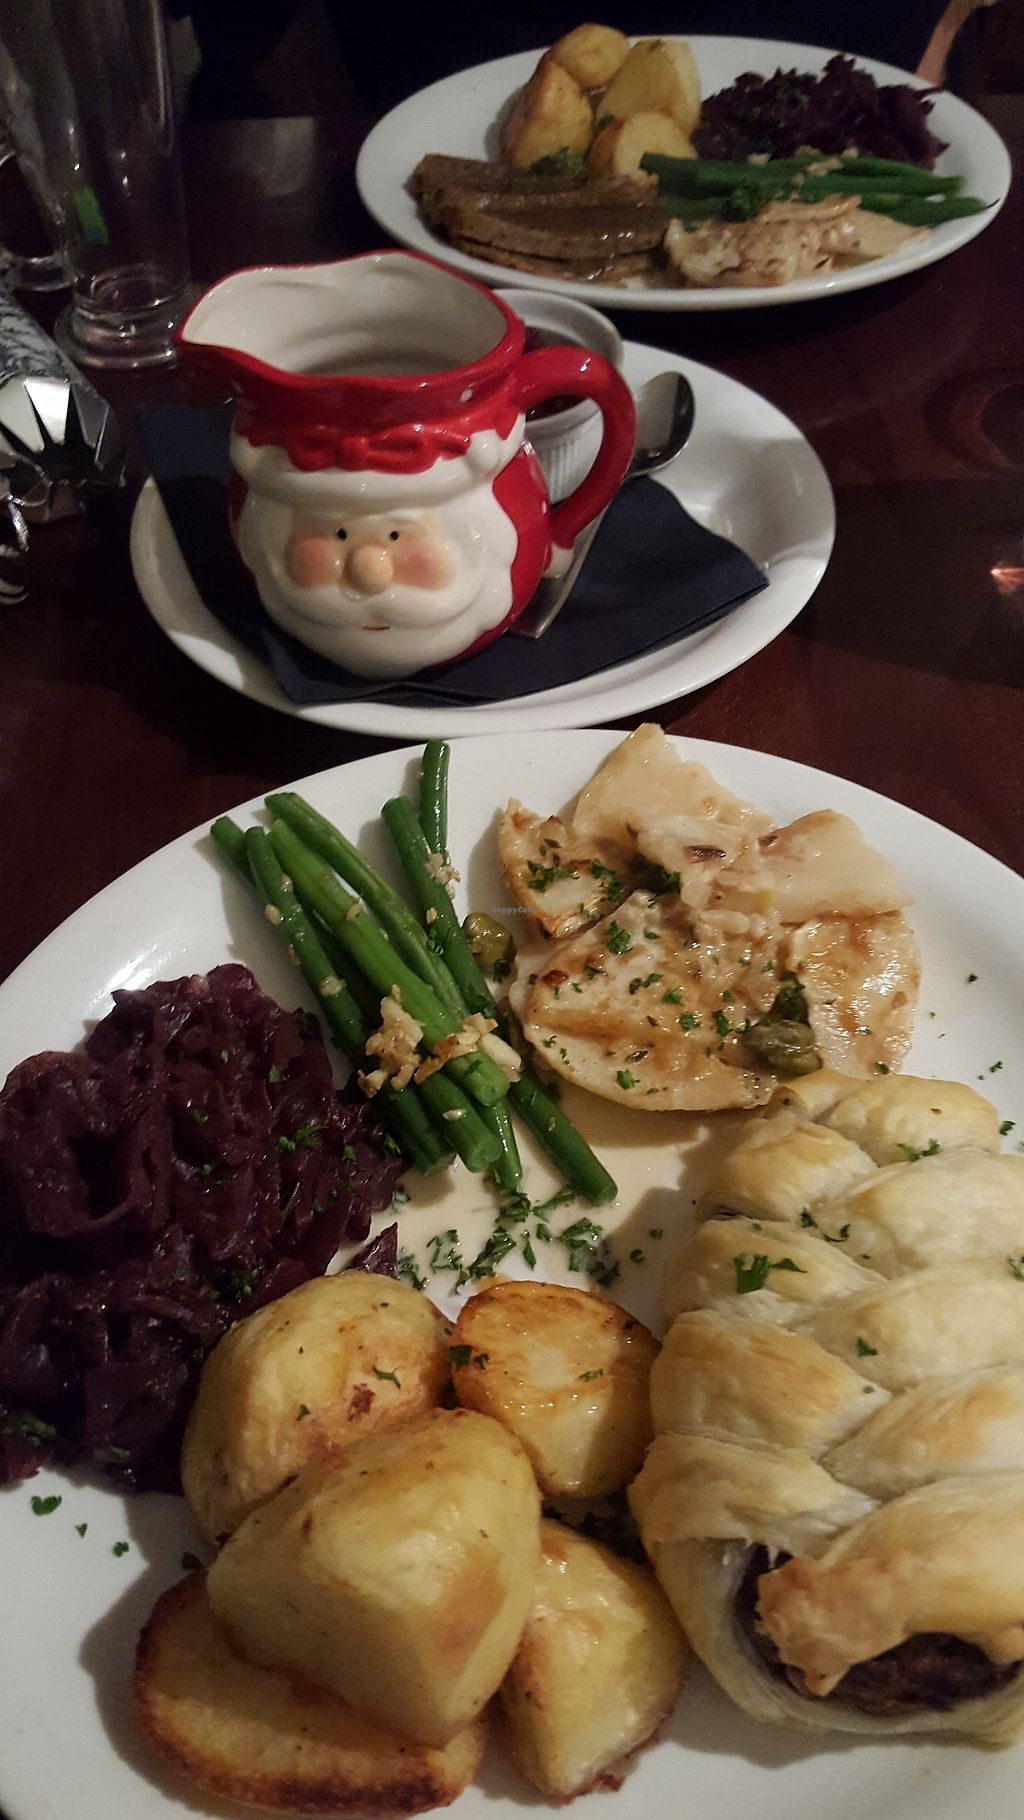 """Photo of Beanos  by <a href=""""/members/profile/VeganAnnaS"""">VeganAnnaS</a> <br/>Christmas lunch menu - savoury strudel with all the trimmings  <br/> December 3, 2017  - <a href='/contact/abuse/image/29081/331993'>Report</a>"""